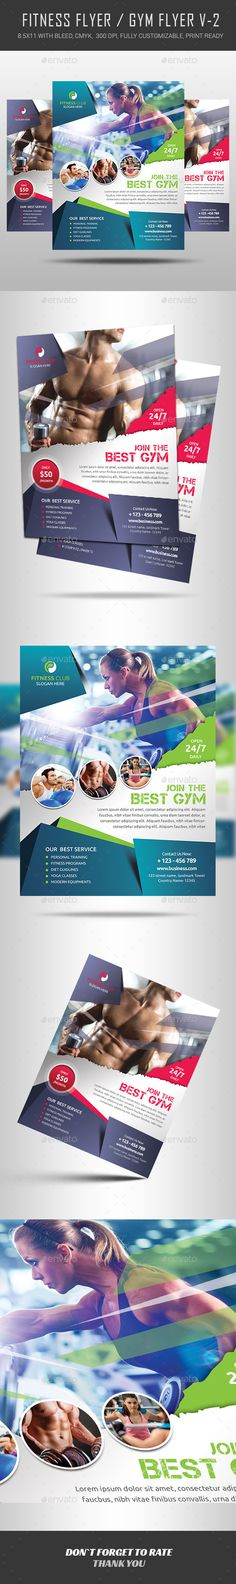 Fitness Roll-up Template, Banners and Signage - fitness brochure template